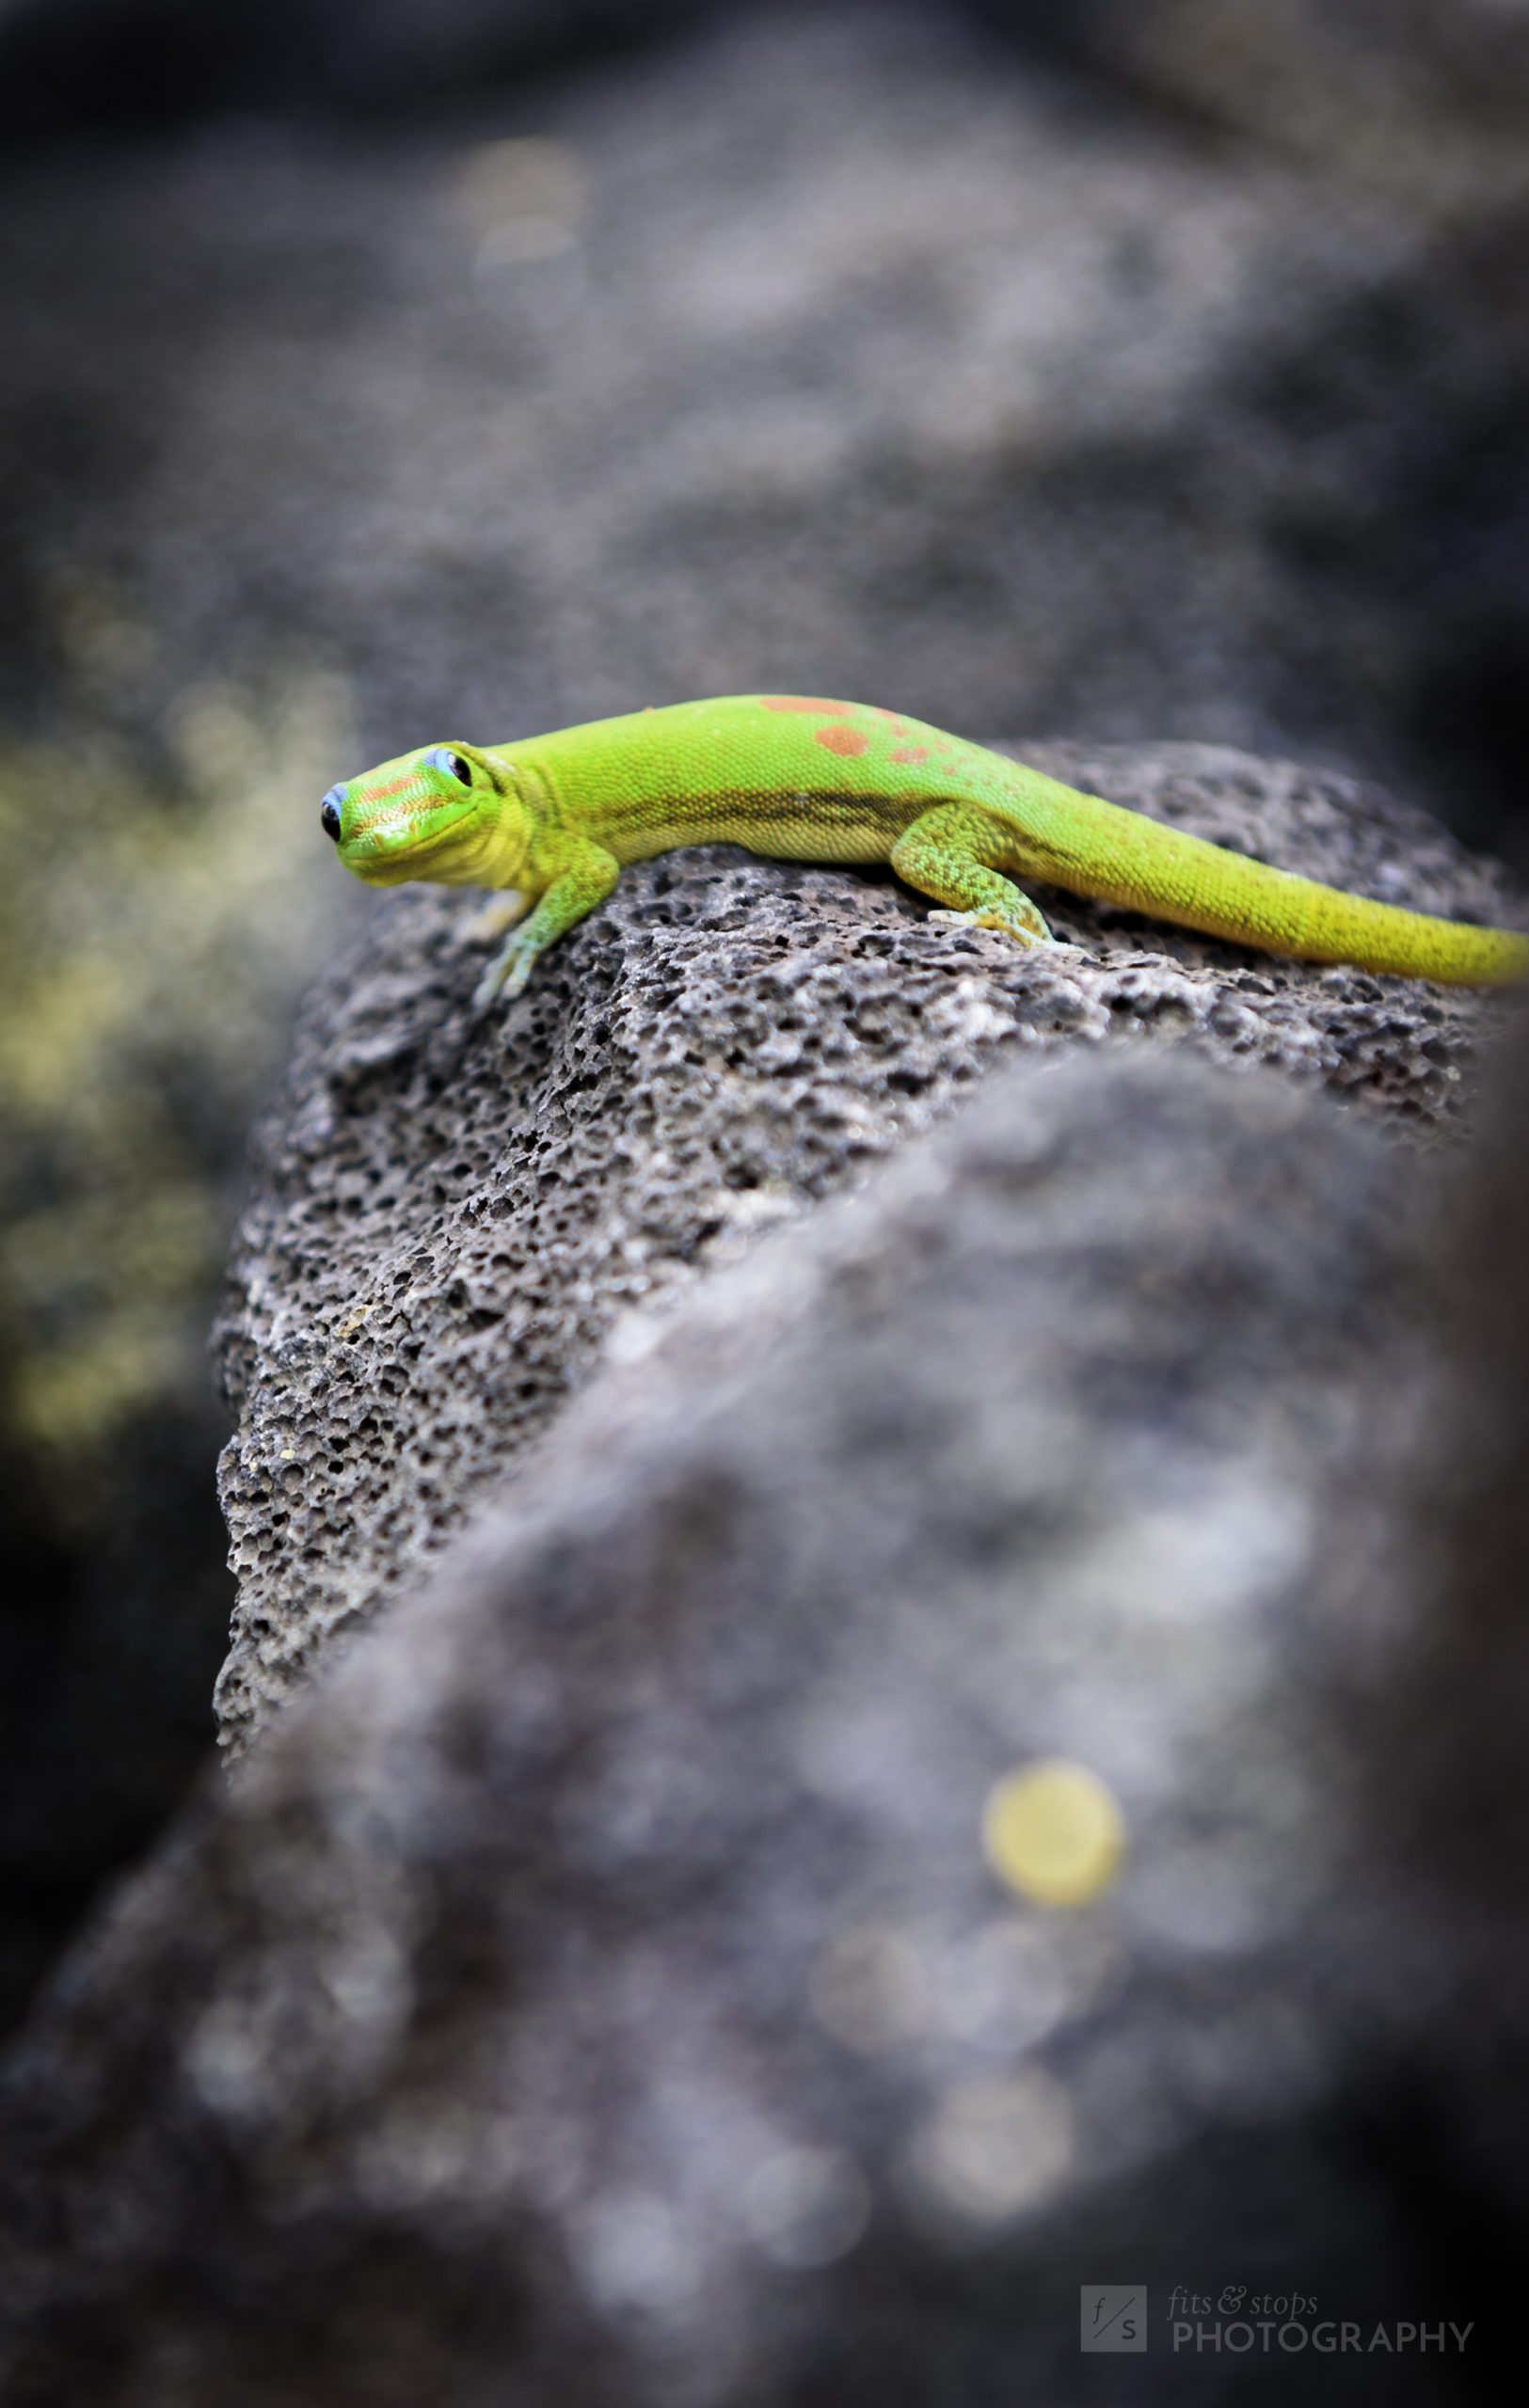 A portrait photograph of a gecko akin to the Geico mascot sits perched on a rock at the City of Refuge in Hawaii, United States.